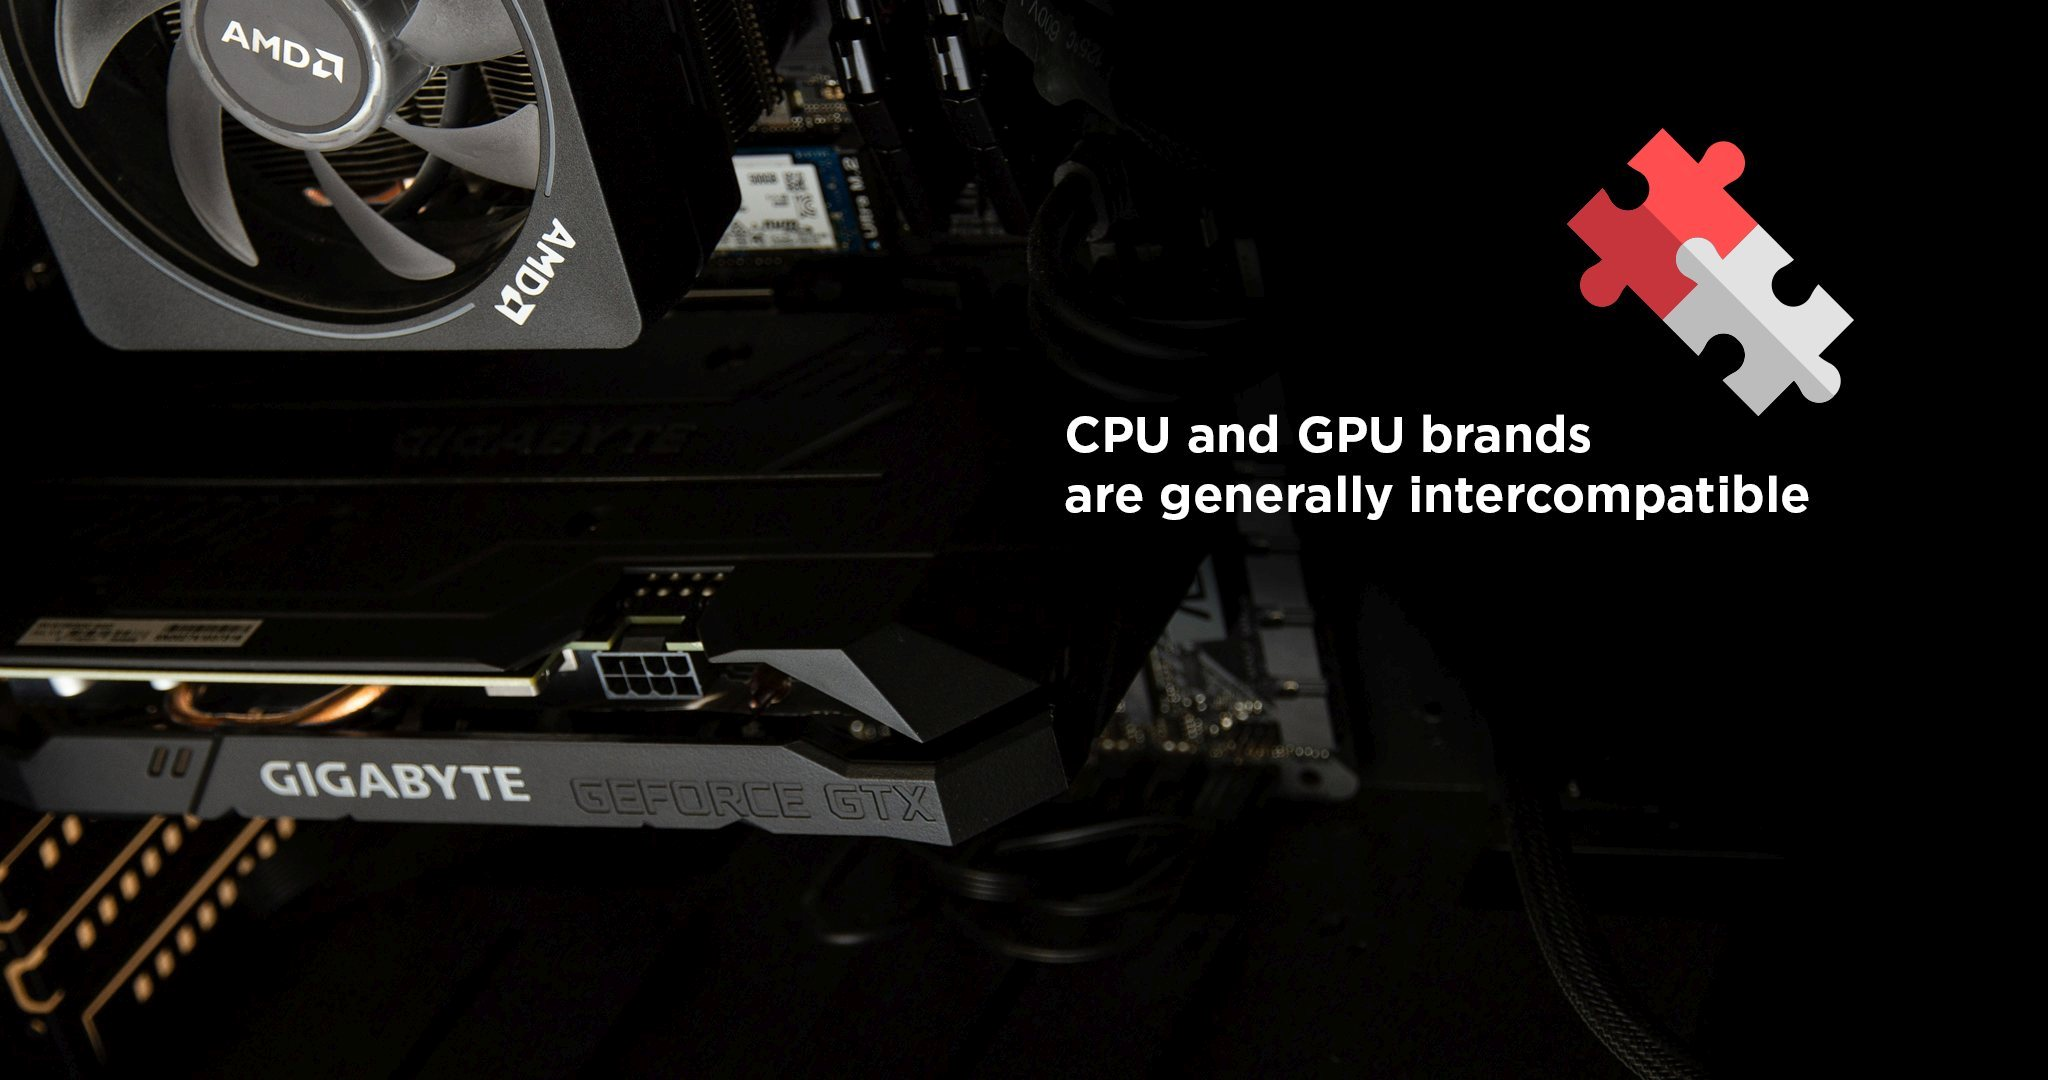 Are Nvidia GPUs compatible with AMD CPUs